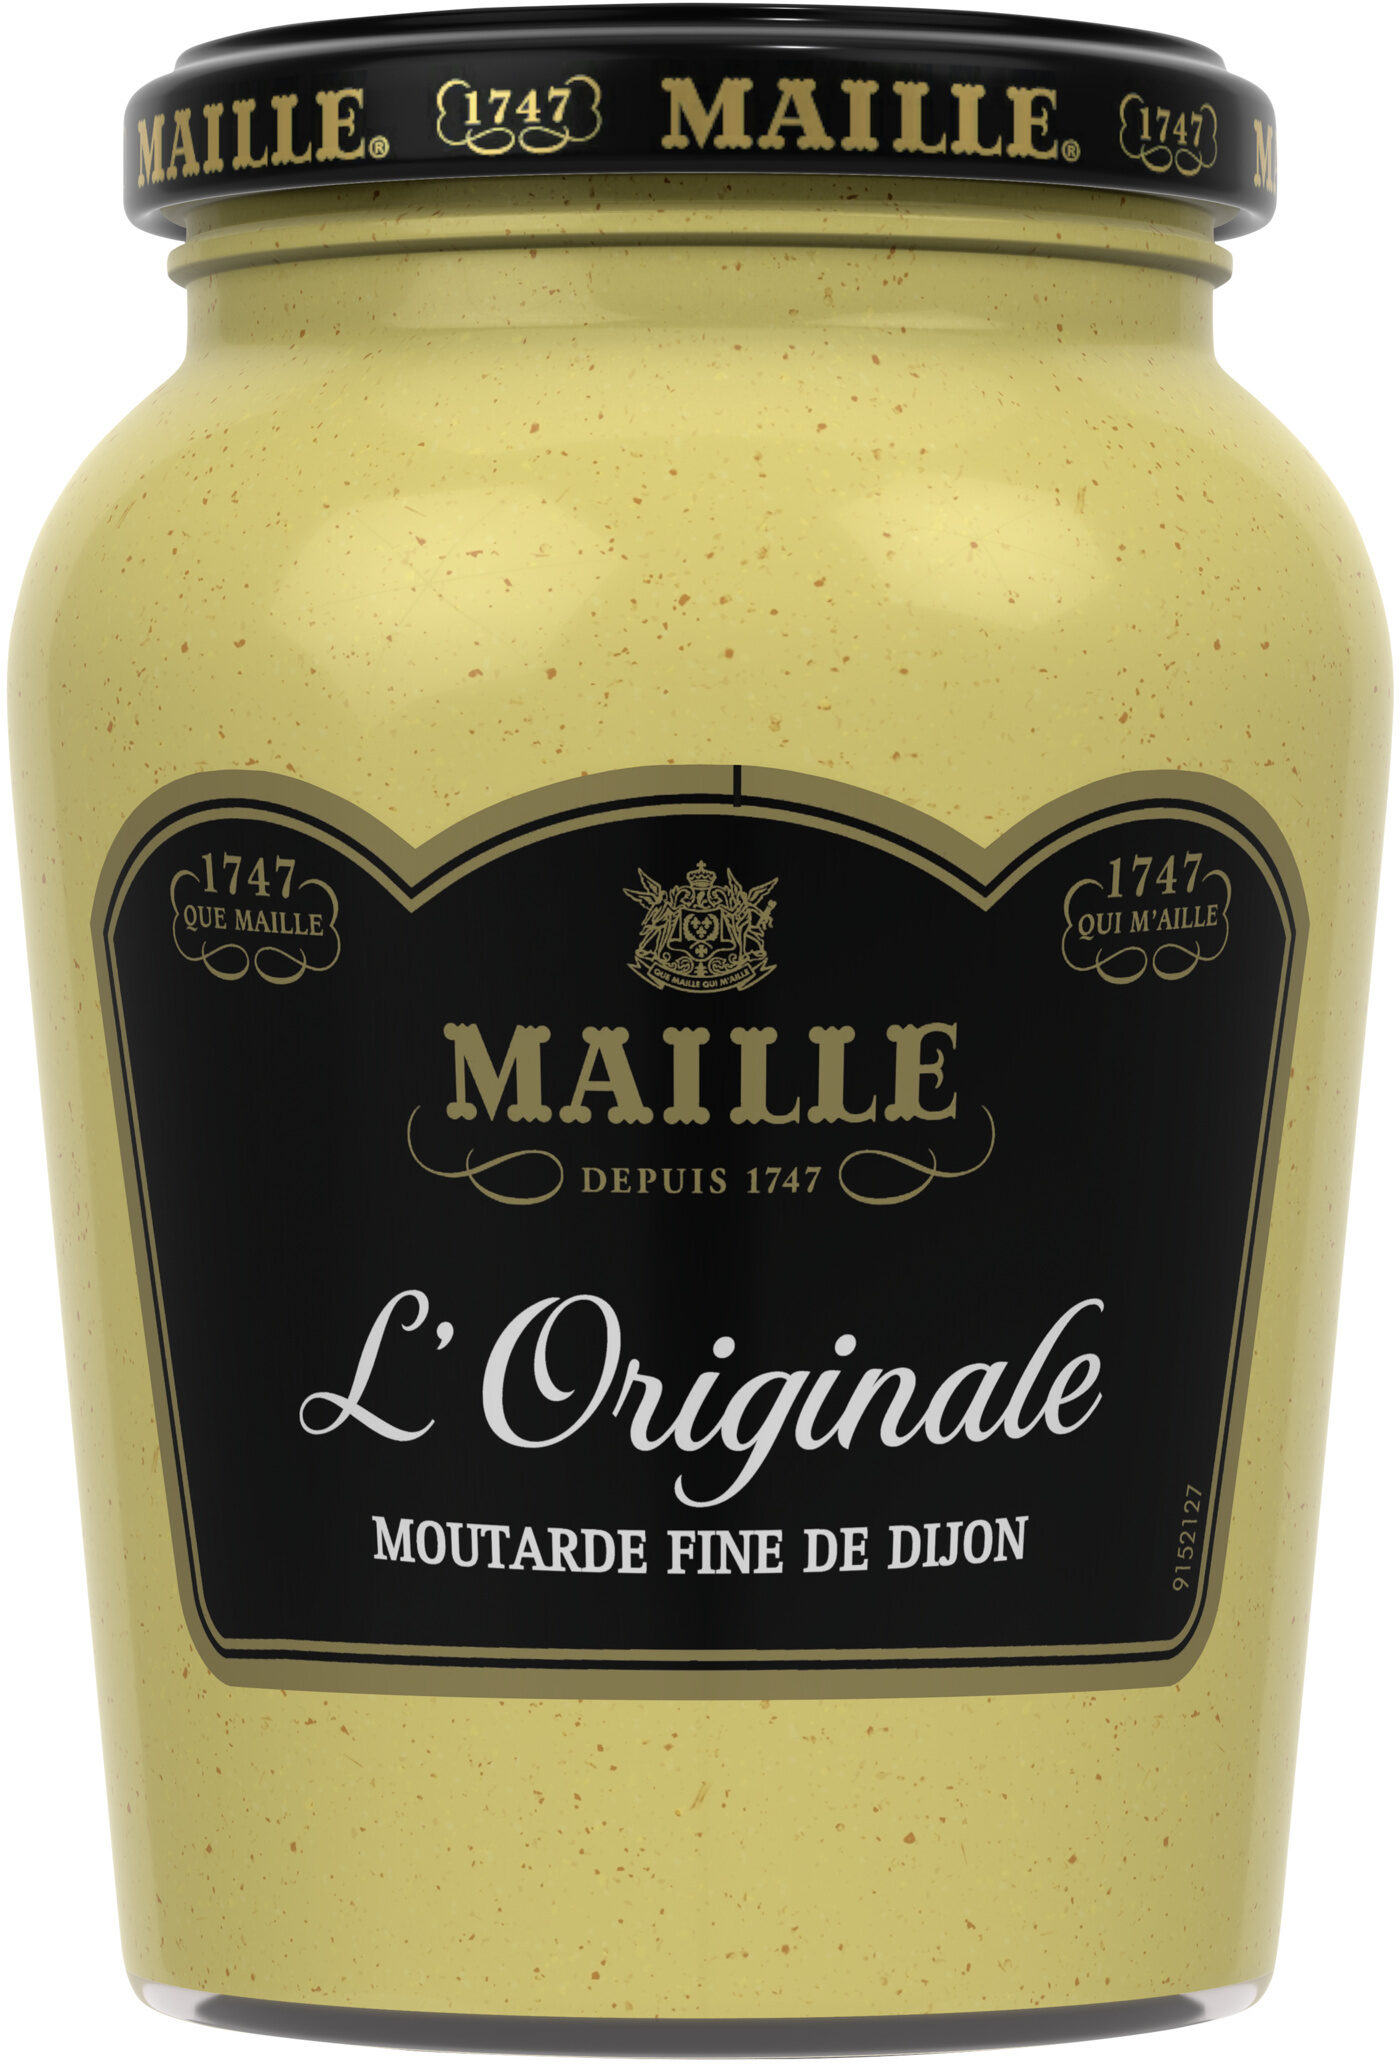 L'Originale Moutarde Fine De Dijon - Product - fr